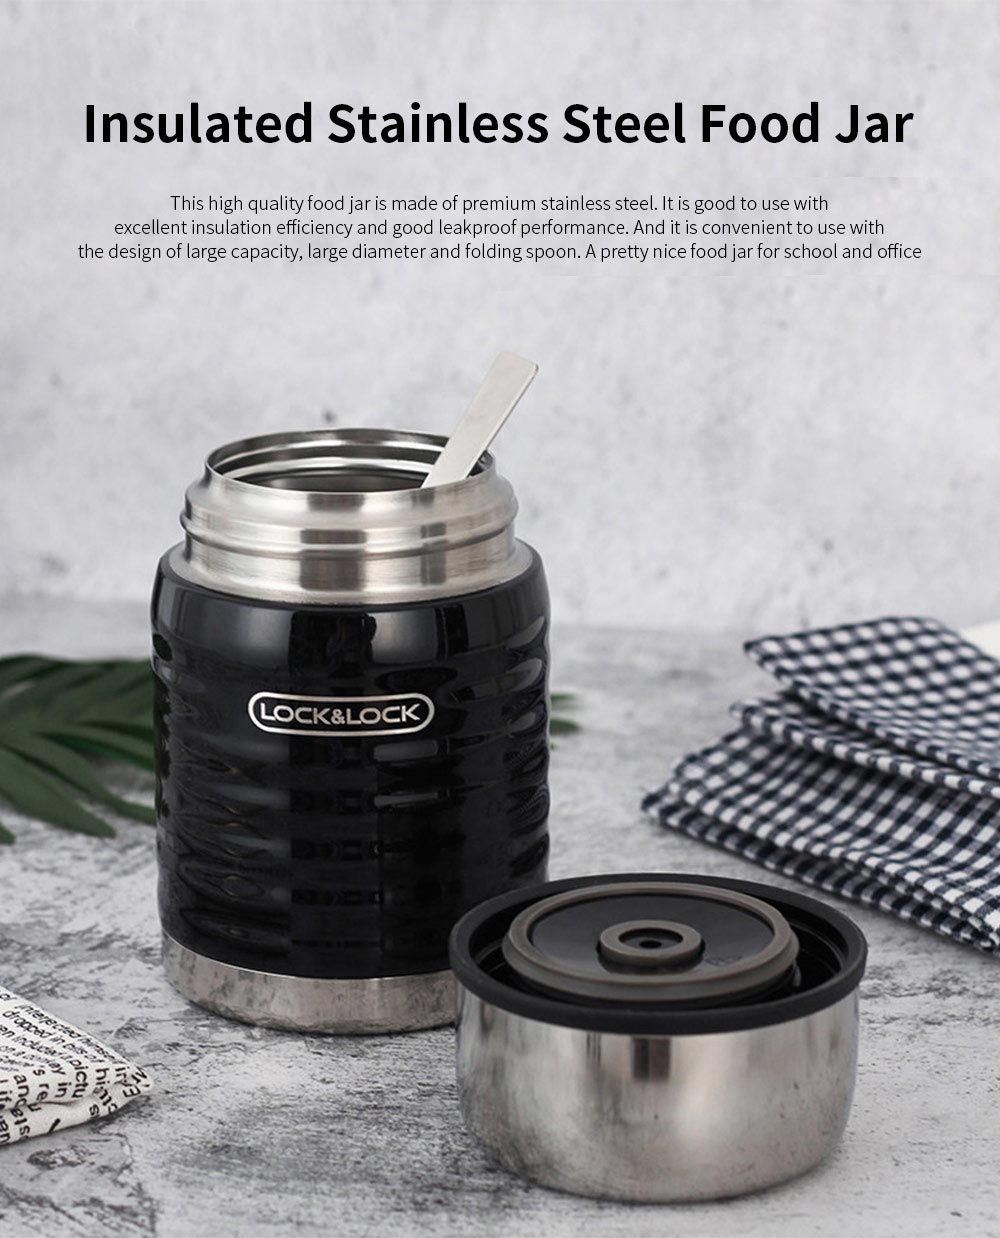 Lock& lock Stainless Steel Food Jar Insulated Leak proof Hot Food Container with Folding Spoon for School Office Picnic 0